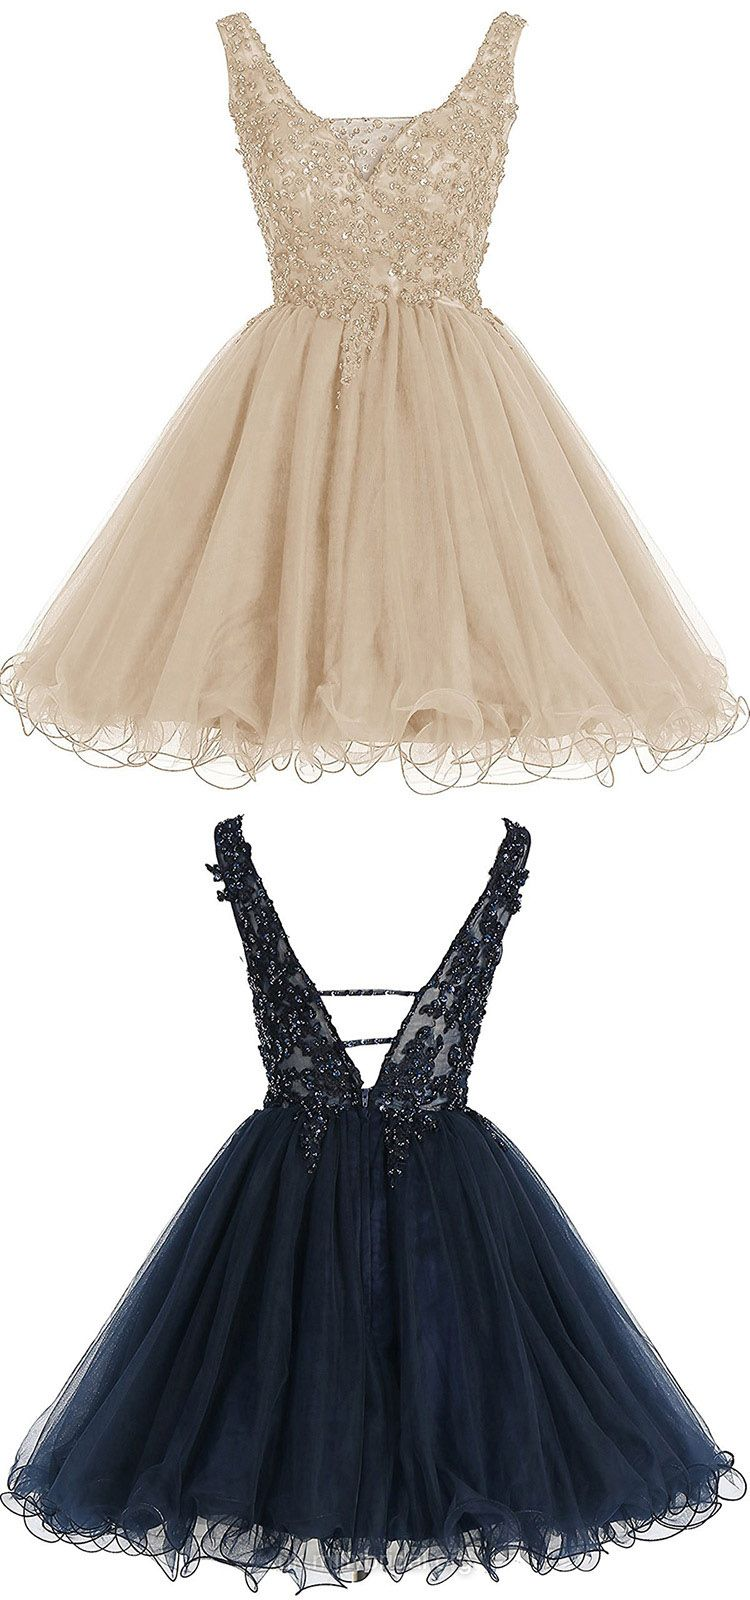 Champagne Prom Dresses Short Cheap Prom Dresses For Teens